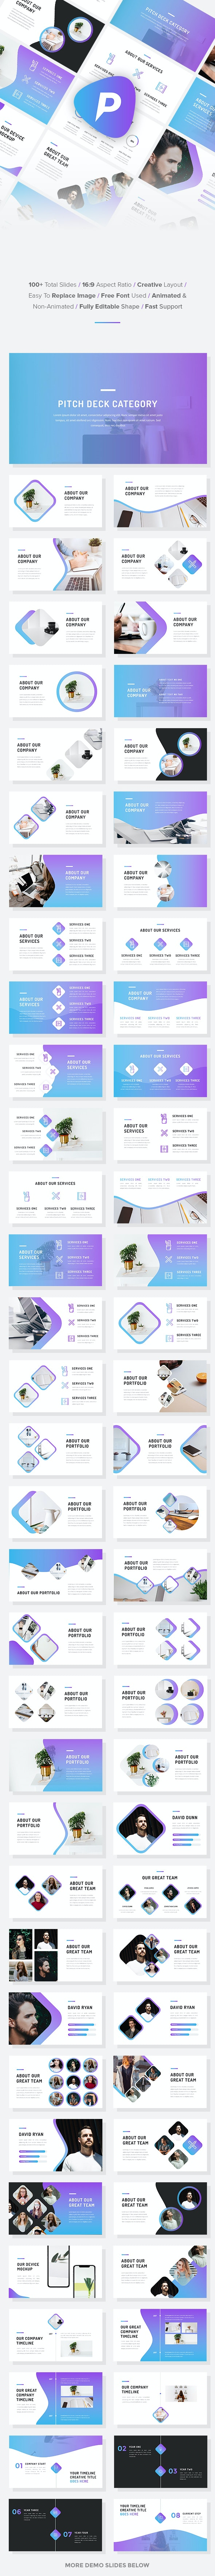 Pitch - Startup Pitch Deck PowerPoint Template - Pitch Deck PowerPoint Templates